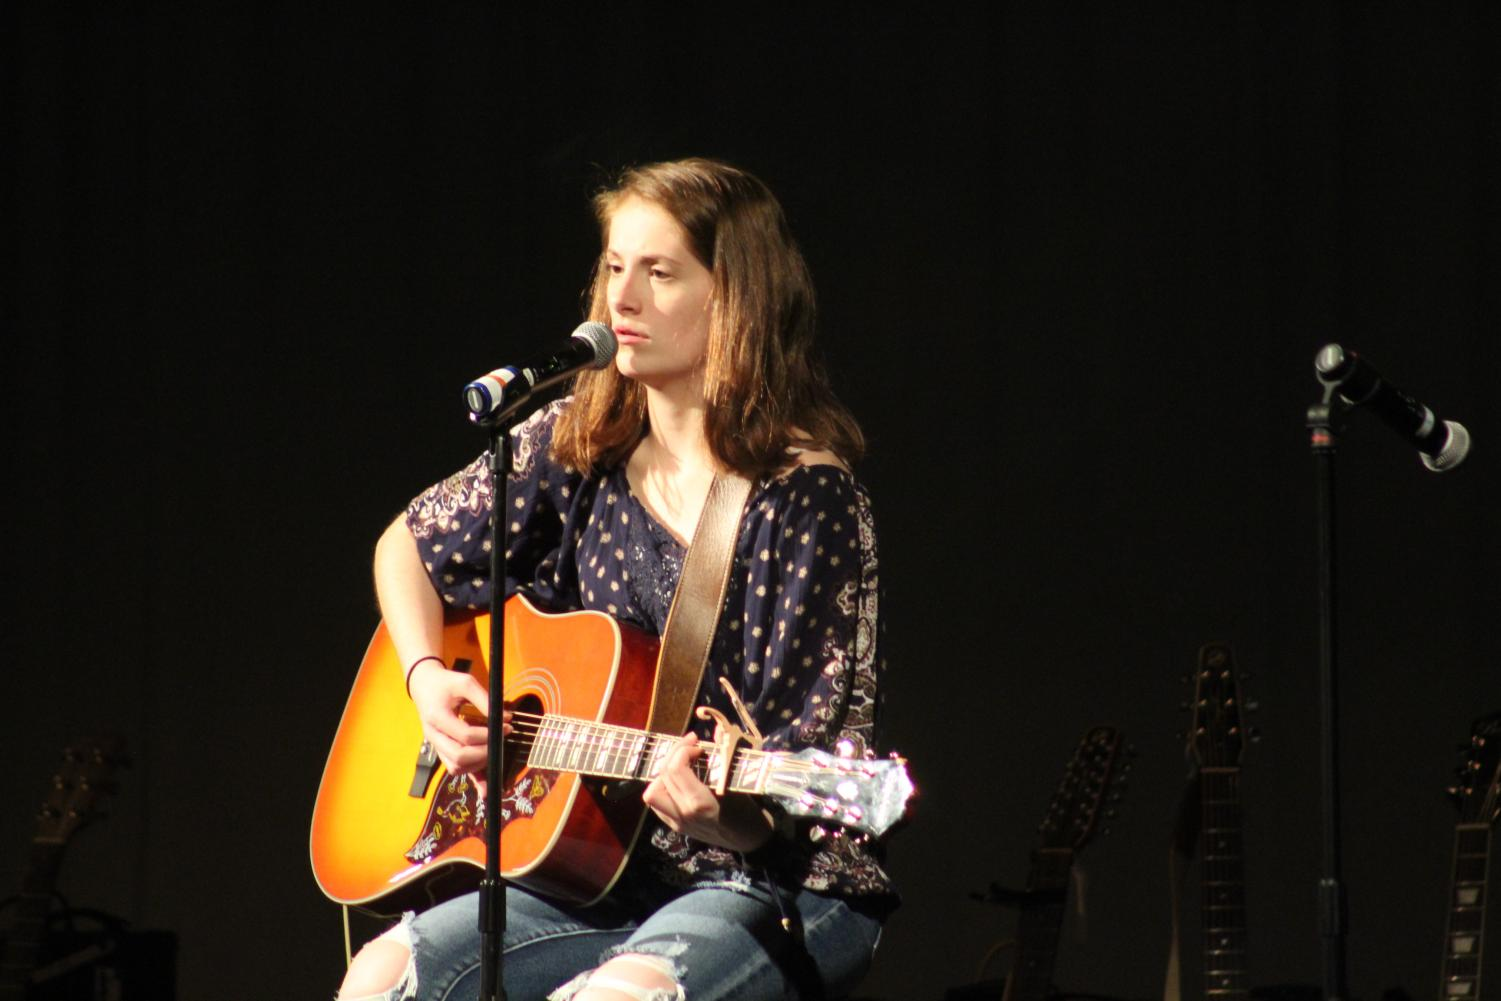 Rachel+Rusch+%2720+plays+the+guitar+during+her+solo+%27Never+Be+Alone%27+by+Shawn+Mendes.